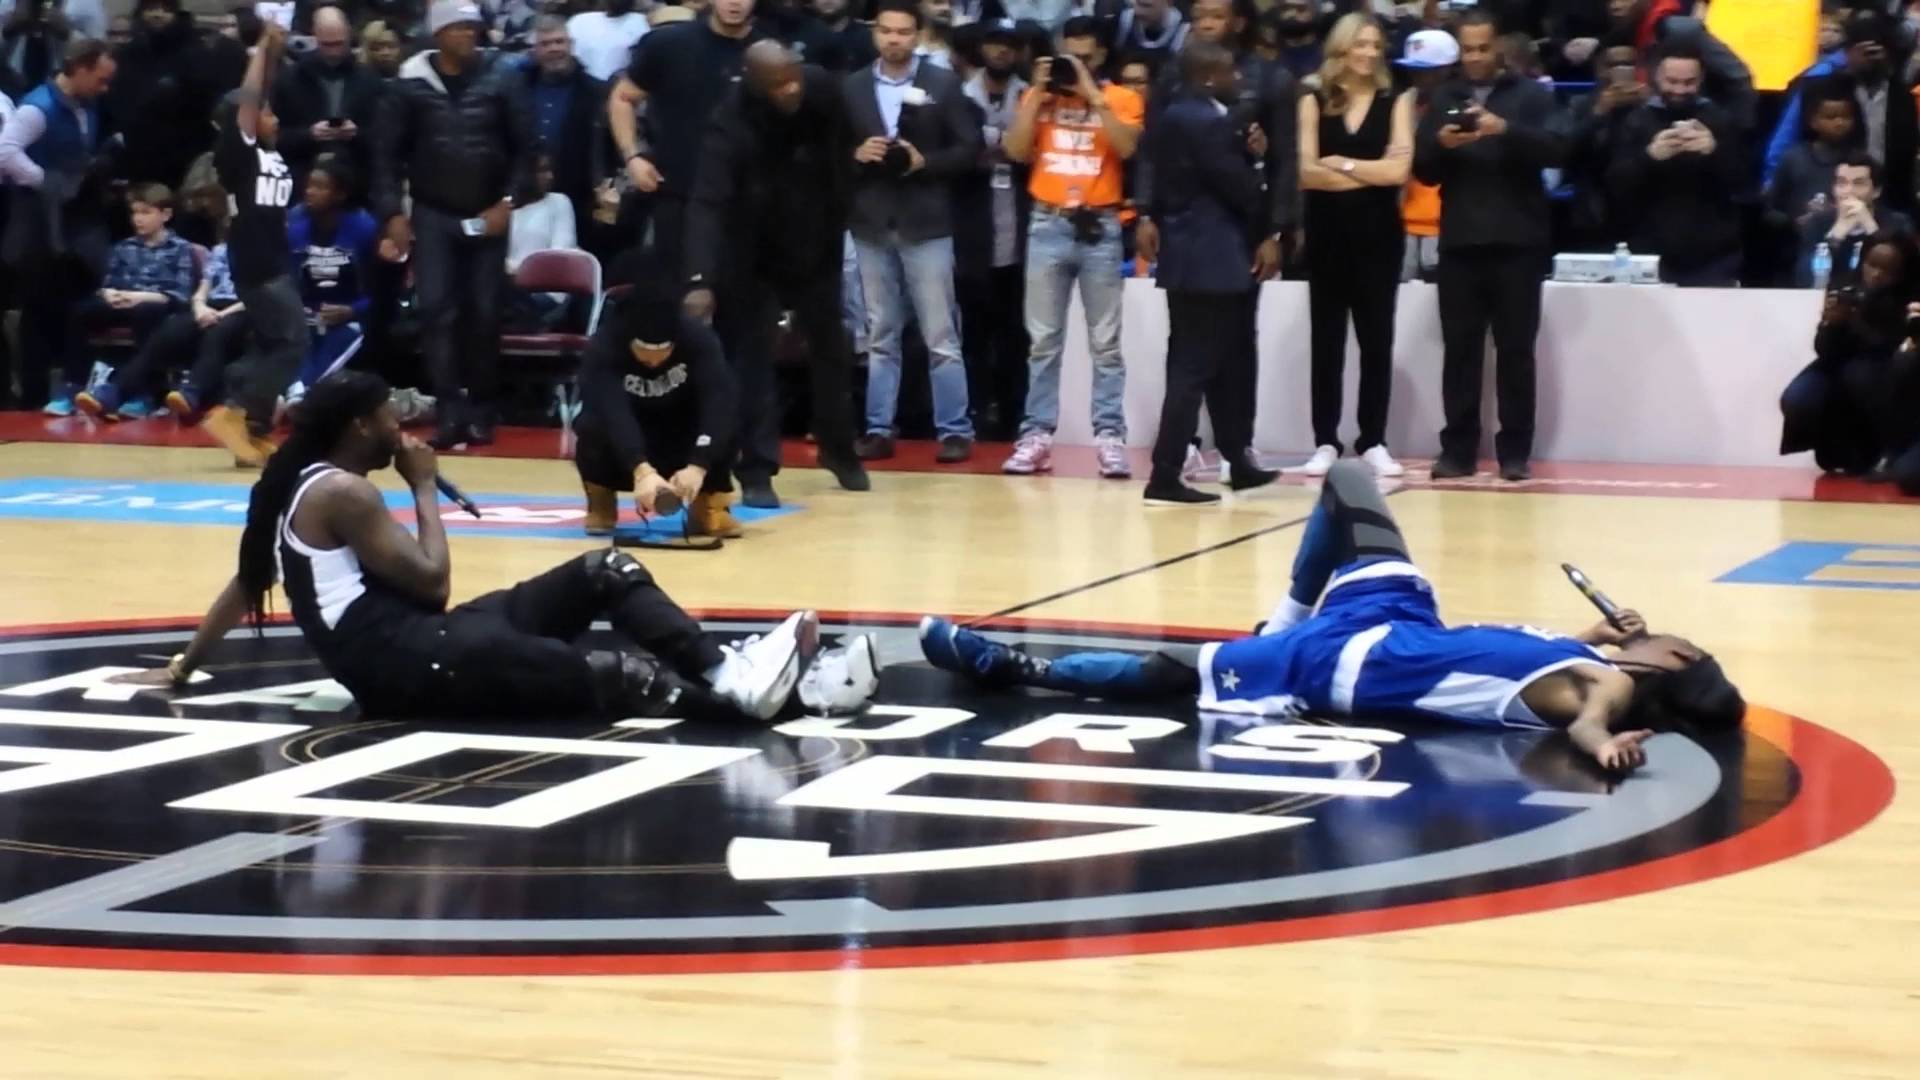 Snoop Dogg & 2 Chainz took a center court rest mid-game for scoreboard controversy